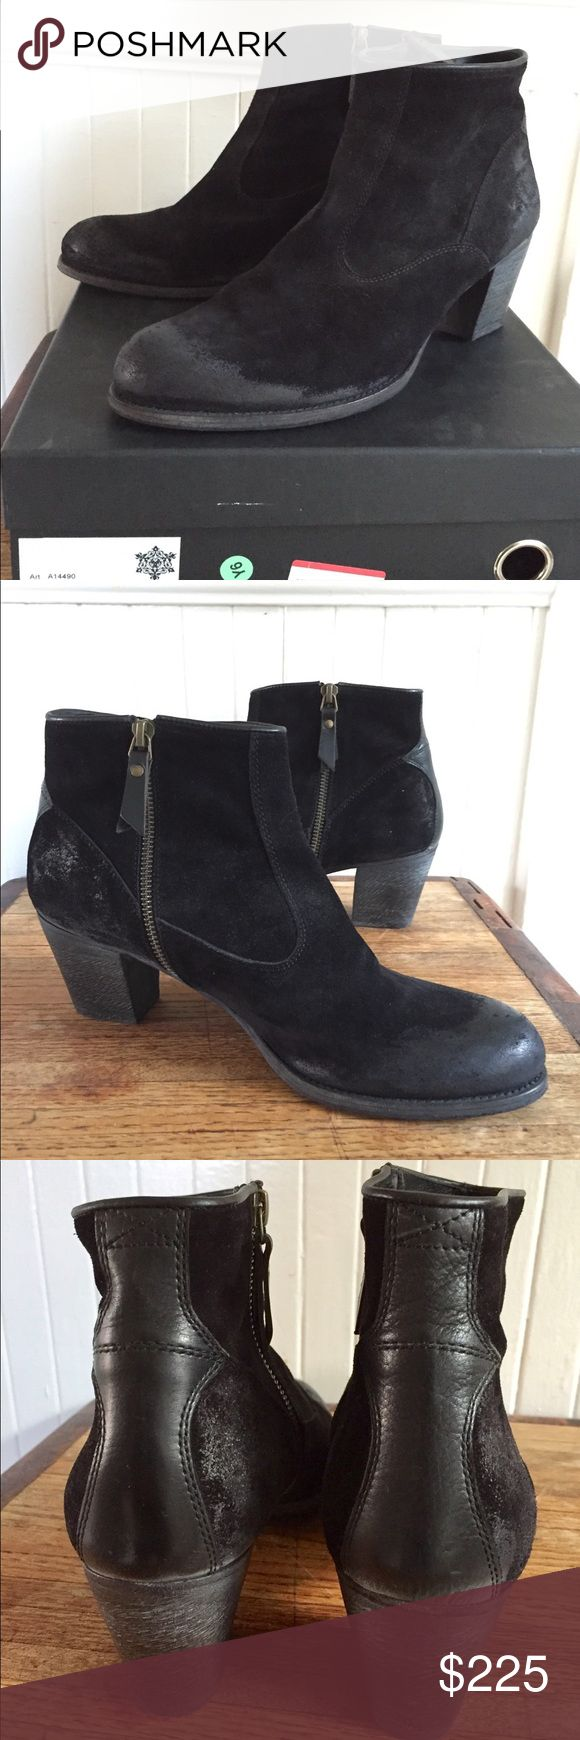 NDC Made by Hand EM Softy Boots Sz 41 New W/ Box Gorgeous black suede and leather NDC Made by Hand EM ankle boots they're basically brand-new I still have the box I only wore them a couple of times they're absolutely amazing retail for over $600!! NDC Made by Hand Shoes Ankle Boots & Booties